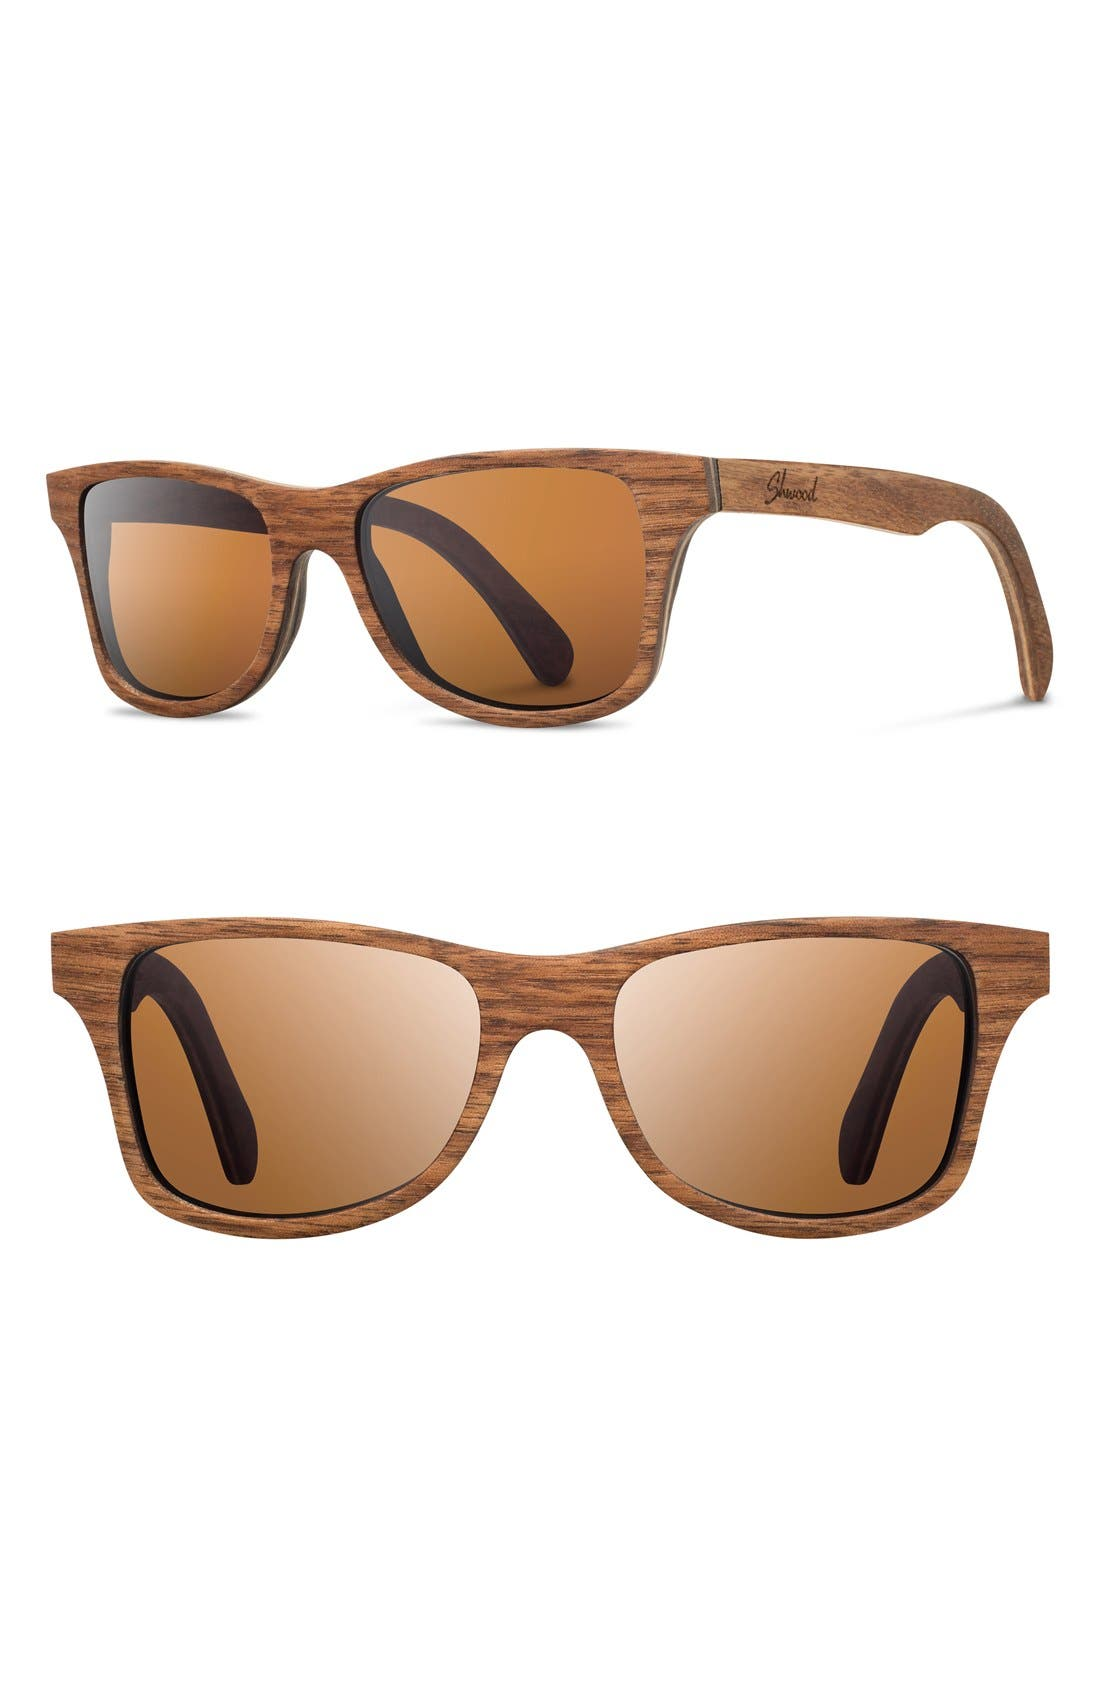 Main Image - Shwood 'Canby' 54mm Polarized Wood Sunglasses